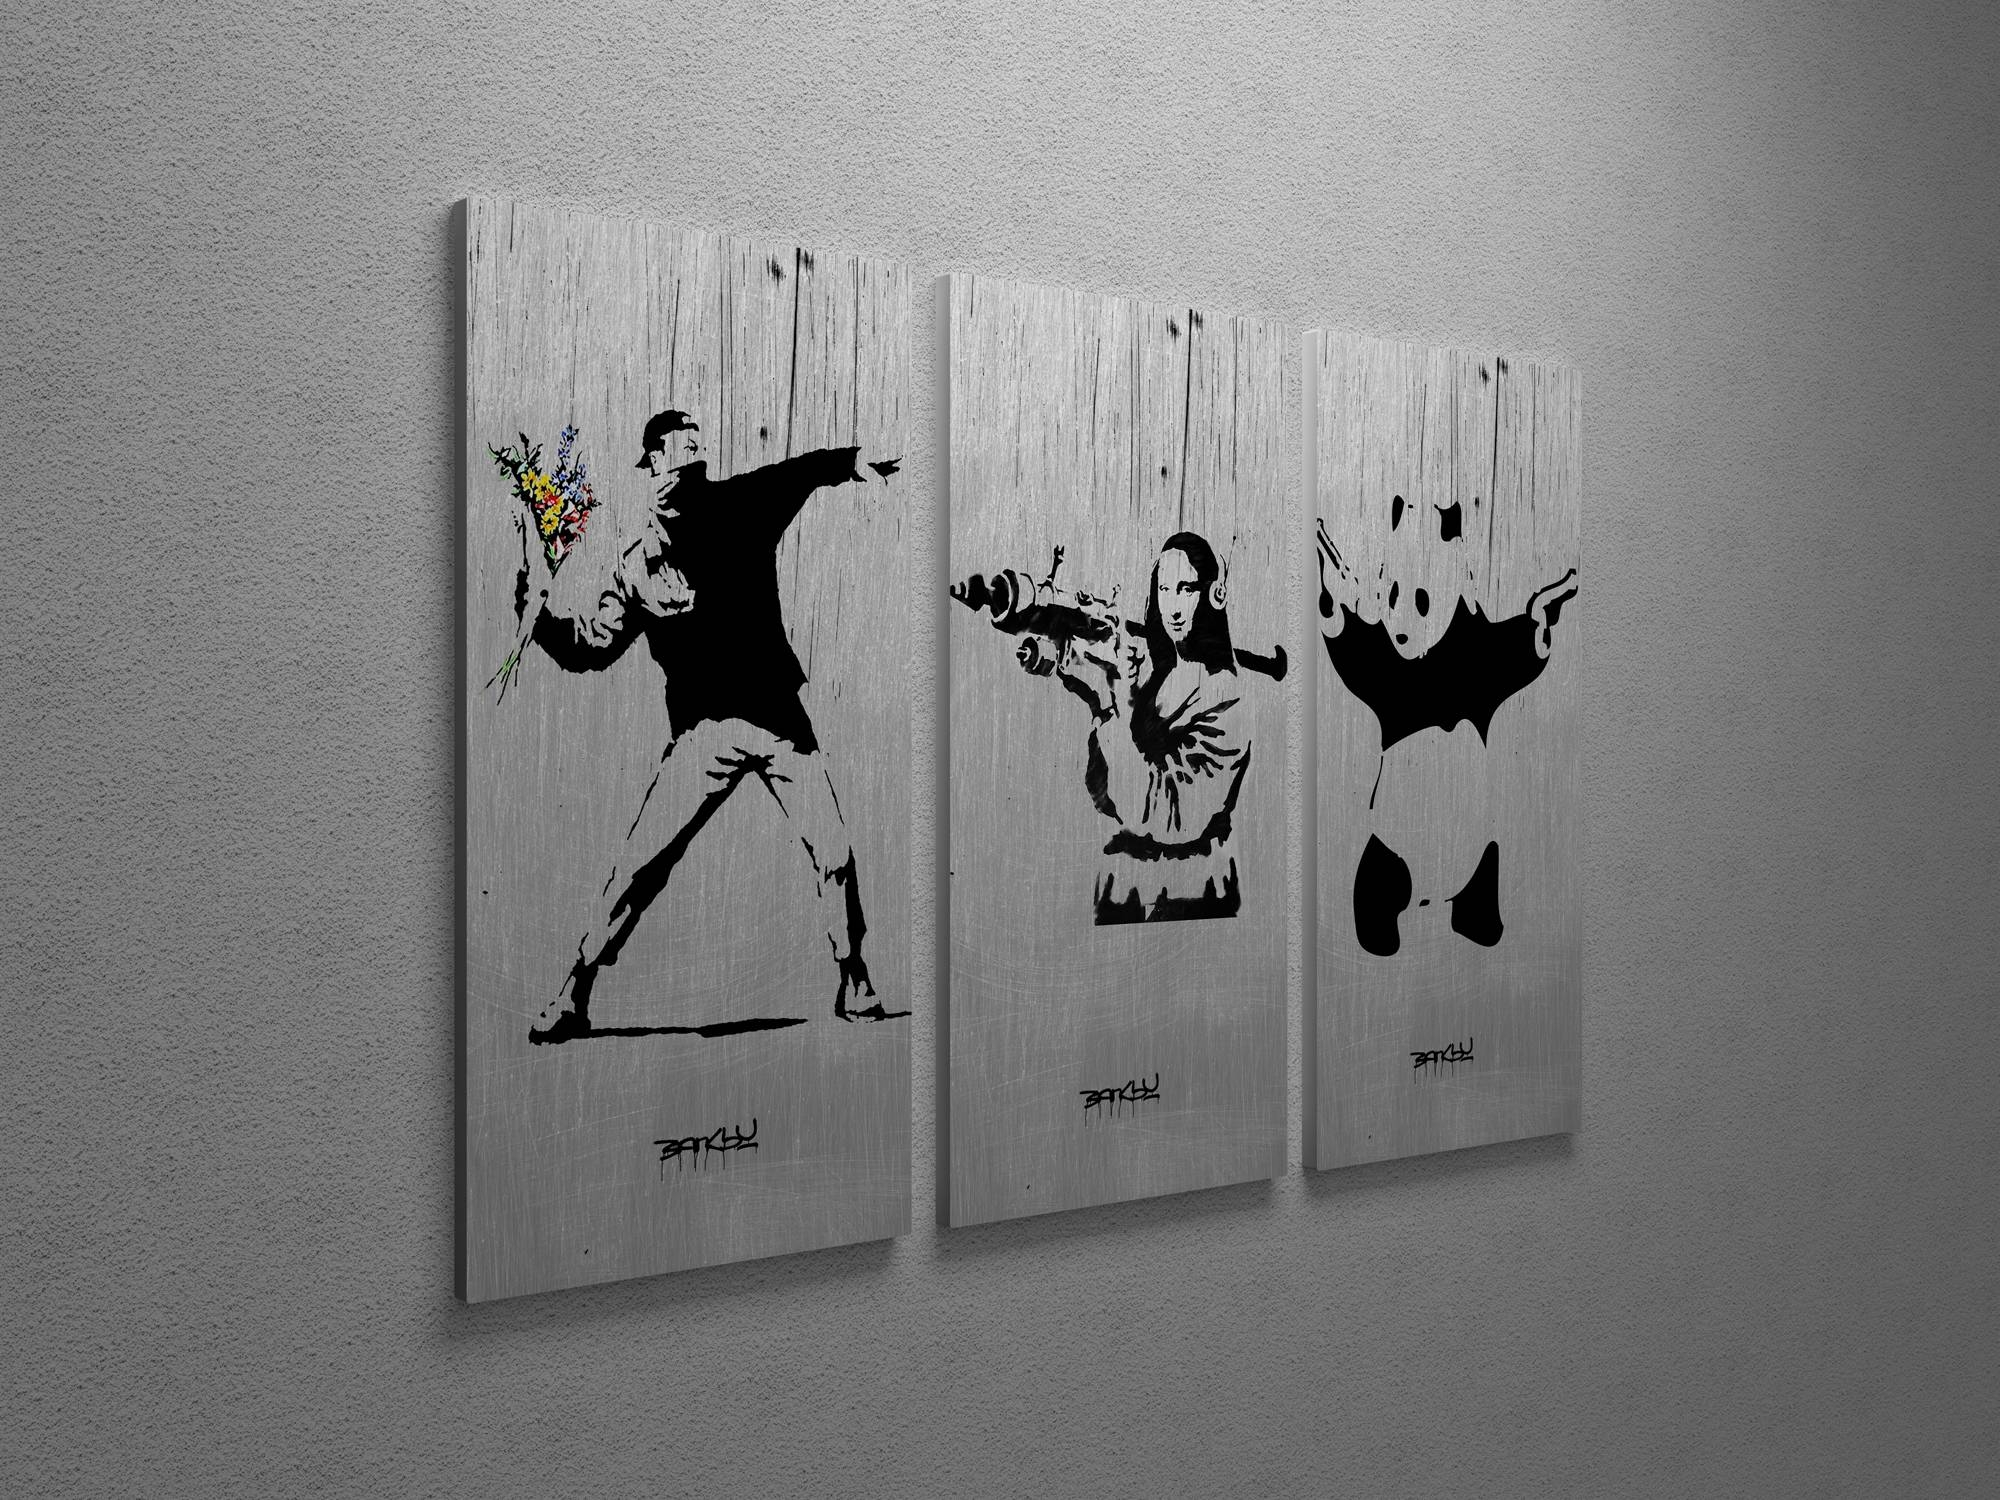 Banksy Flower Thrower, Mona Lisa, Panda Collage Triptych Canvas With Best And Newest Banksy Wall Art Canvas (View 16 of 20)